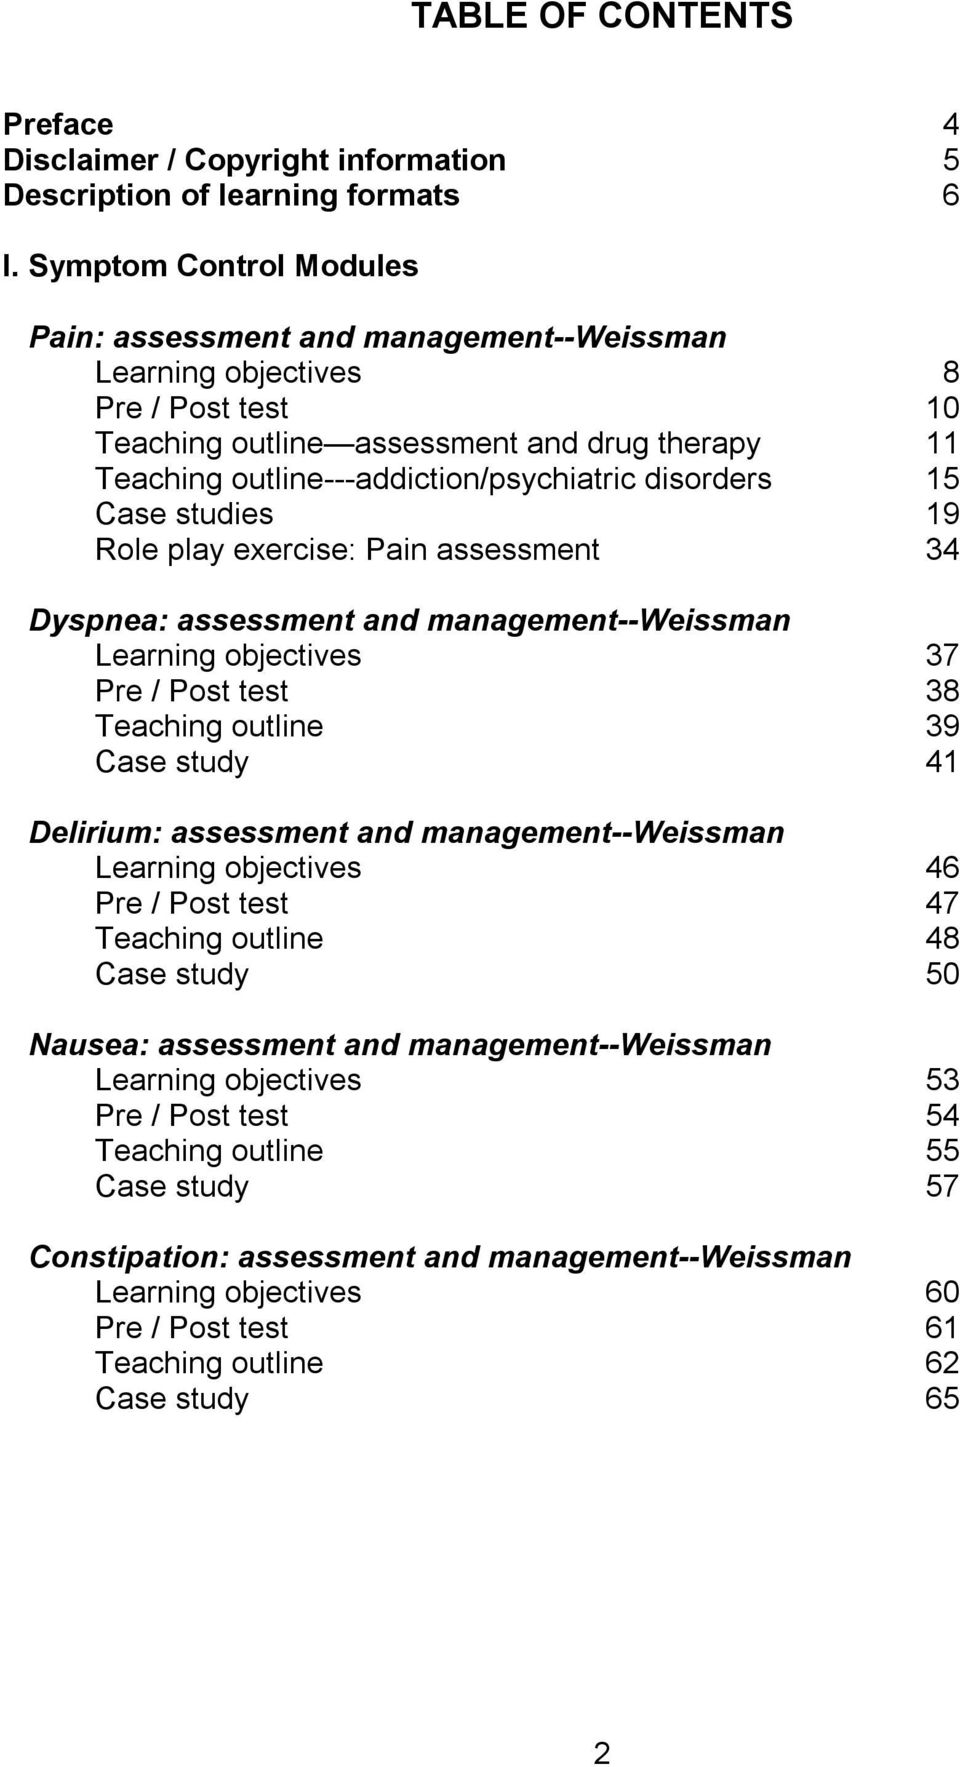 disorders 15 Case studies 19 Role play exercise: Pain assessment 34 Dyspnea: assessment and management--weissman Learning objectives 37 Pre / Post test 38 Teaching outline 39 Case study 41 Delirium: